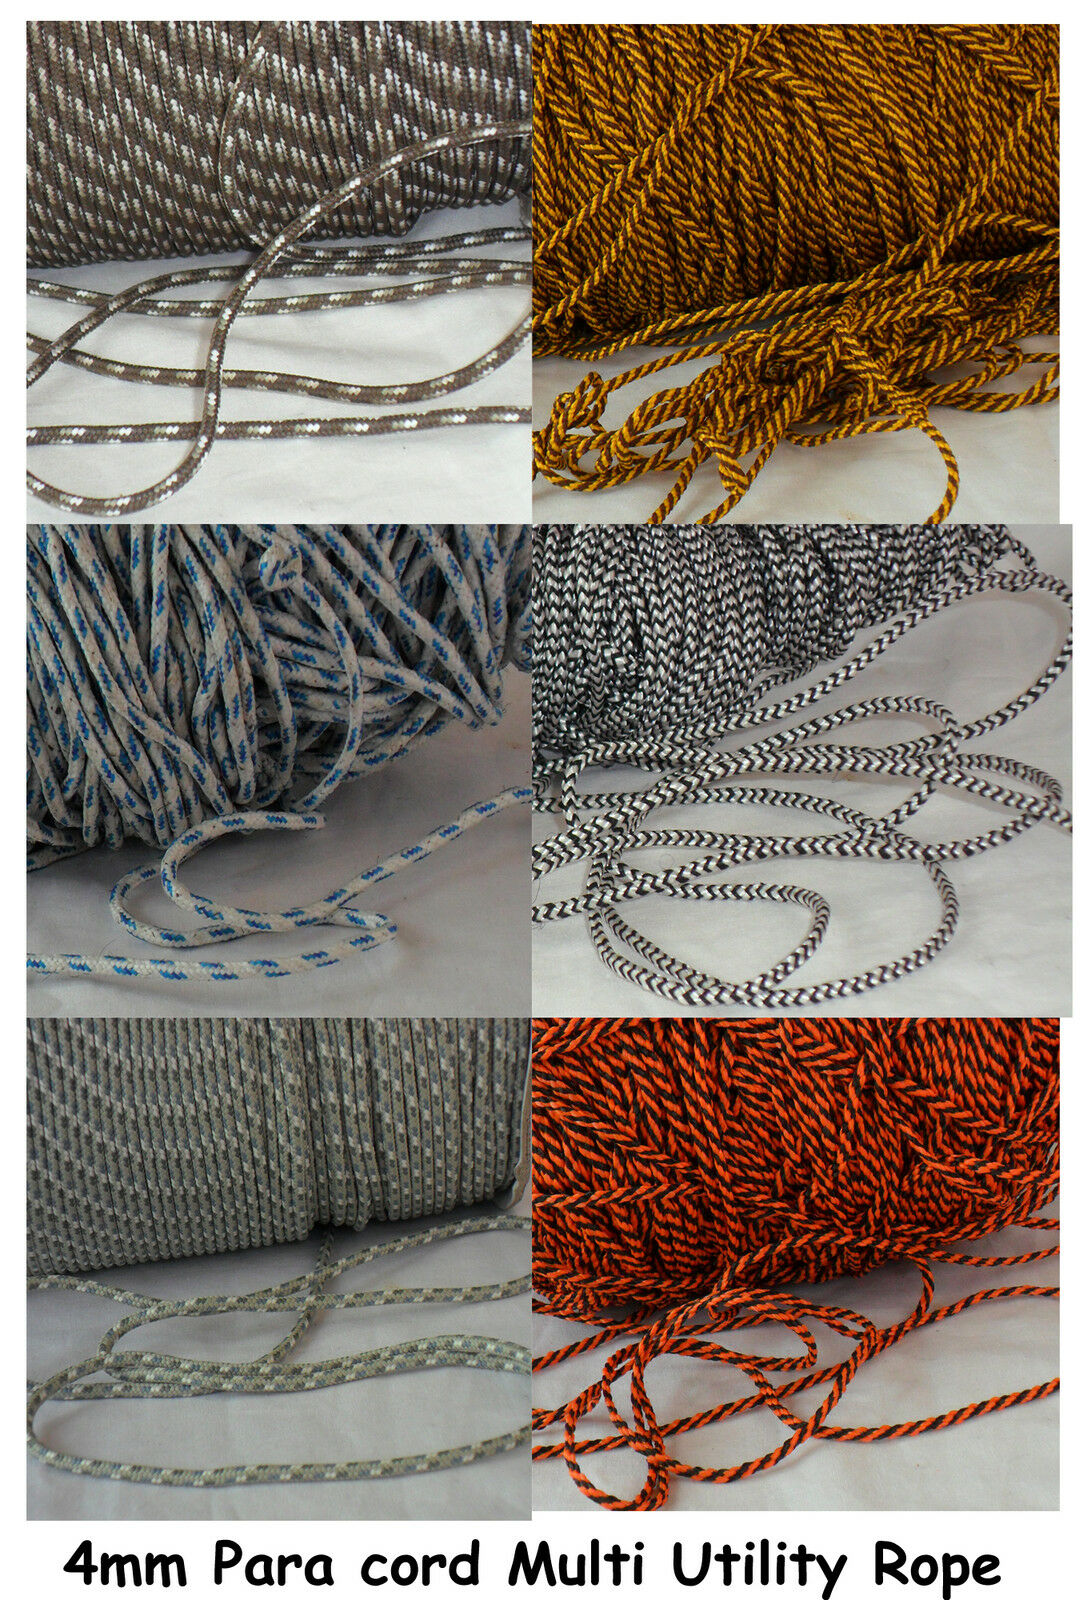 3mm Mousing Line Paracord POLYESTER Braided Guide Rope Blind light Camp Boat